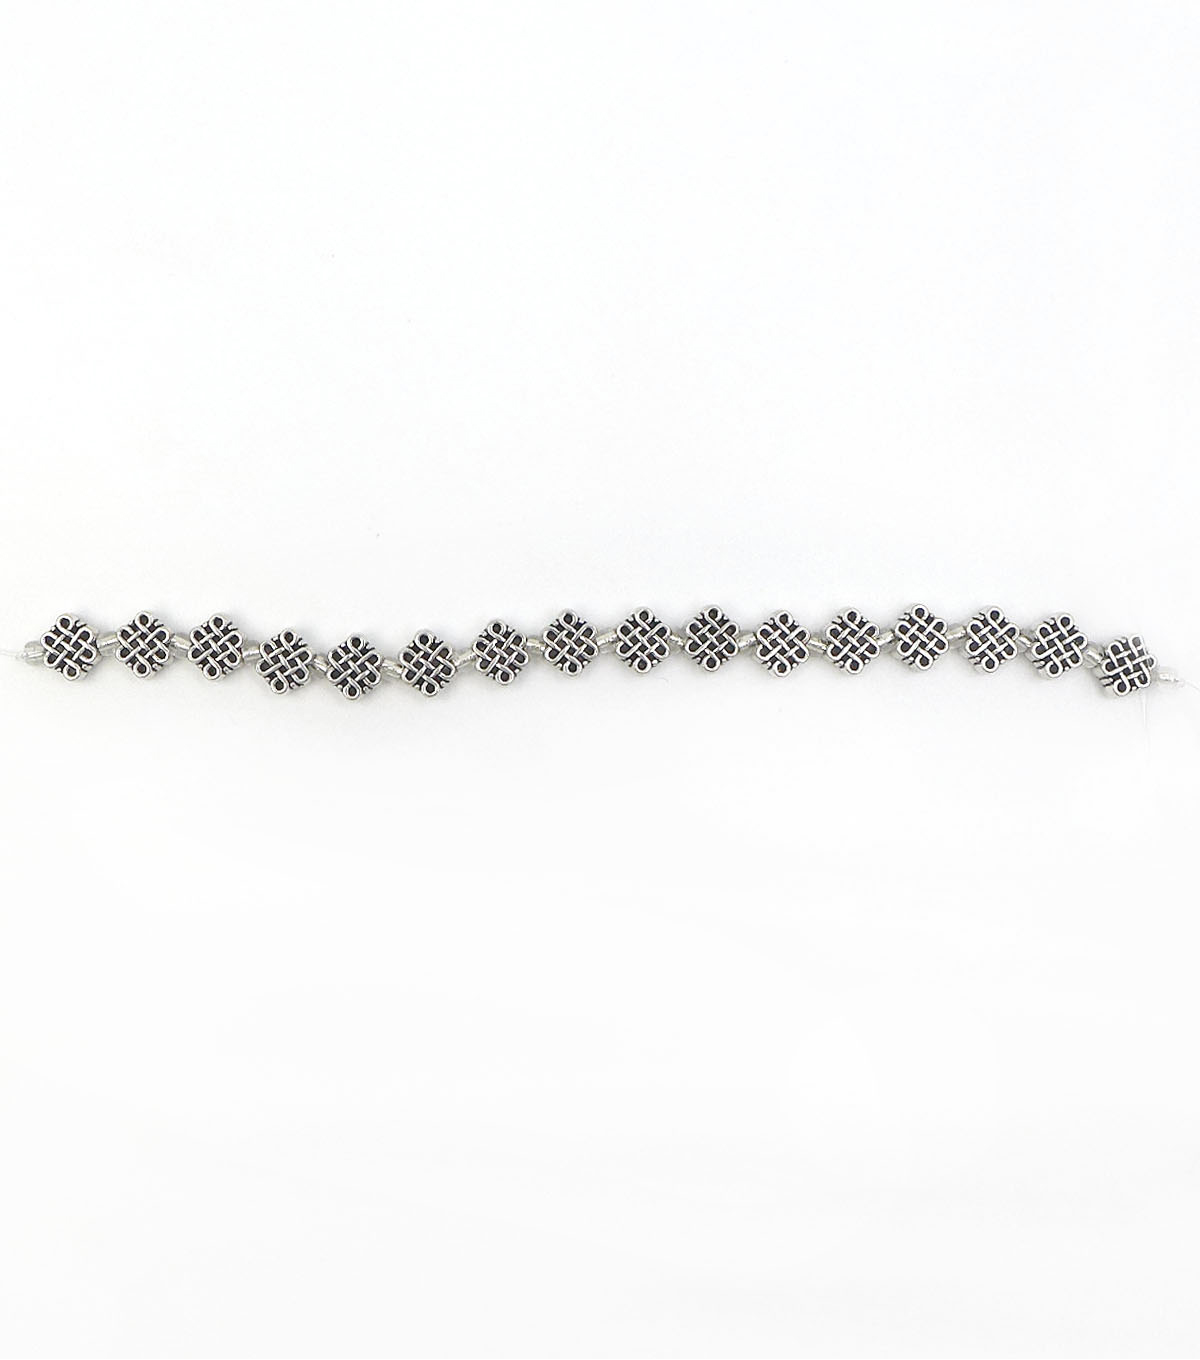 hildie & jo™ Knot Metal Strung Beads